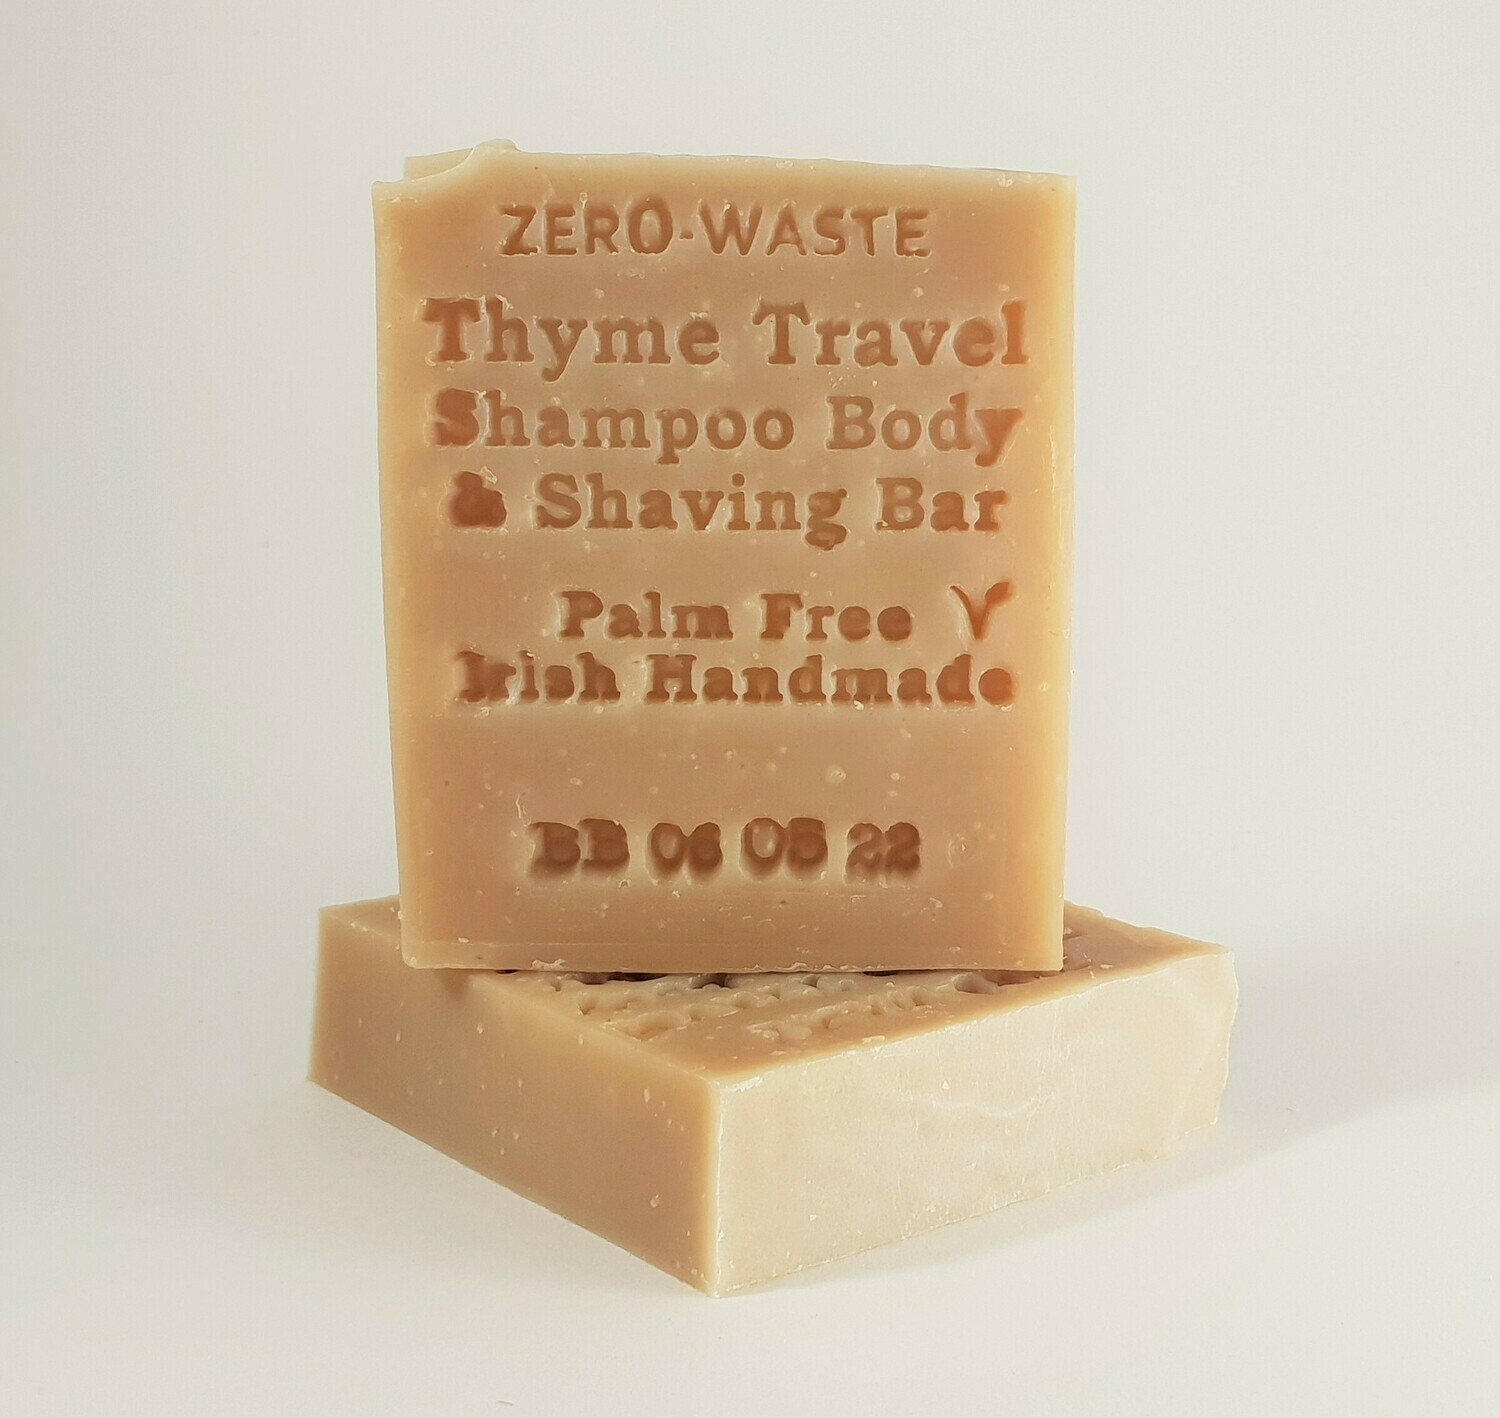 Palm Free Irish Thyme Travel Shampoo, Body, Shaving Bar